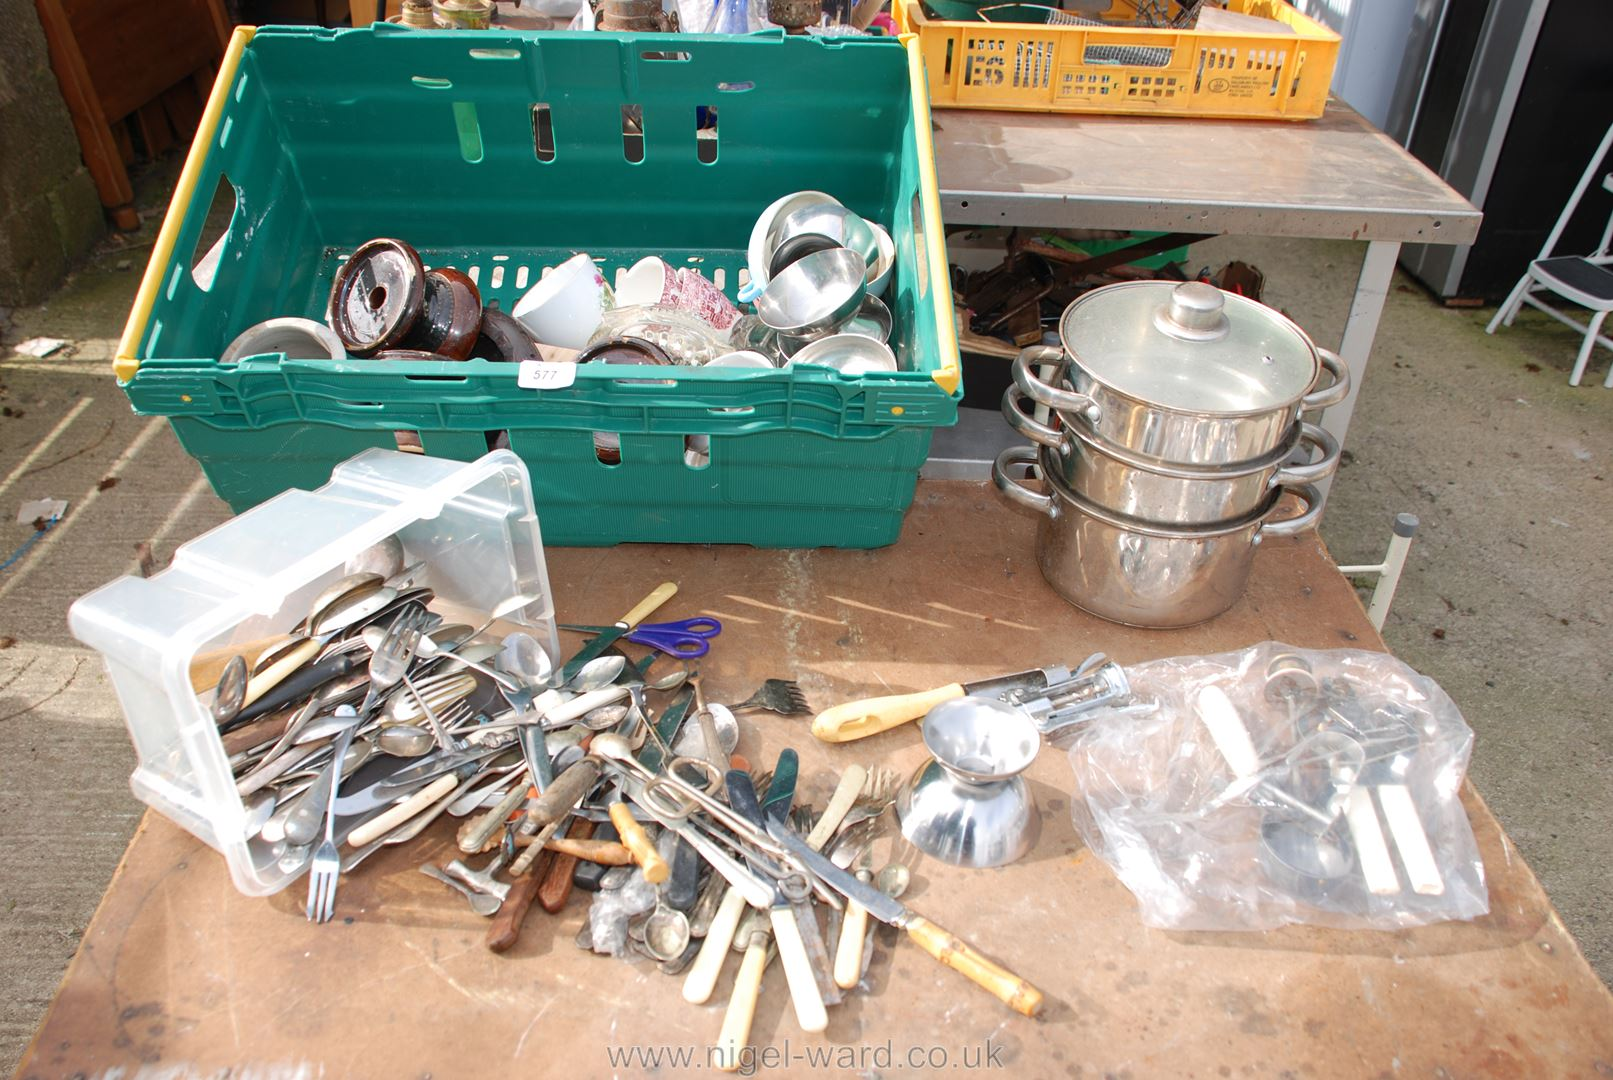 Tray of steaming pans, sundae dishes, cutlery etc.